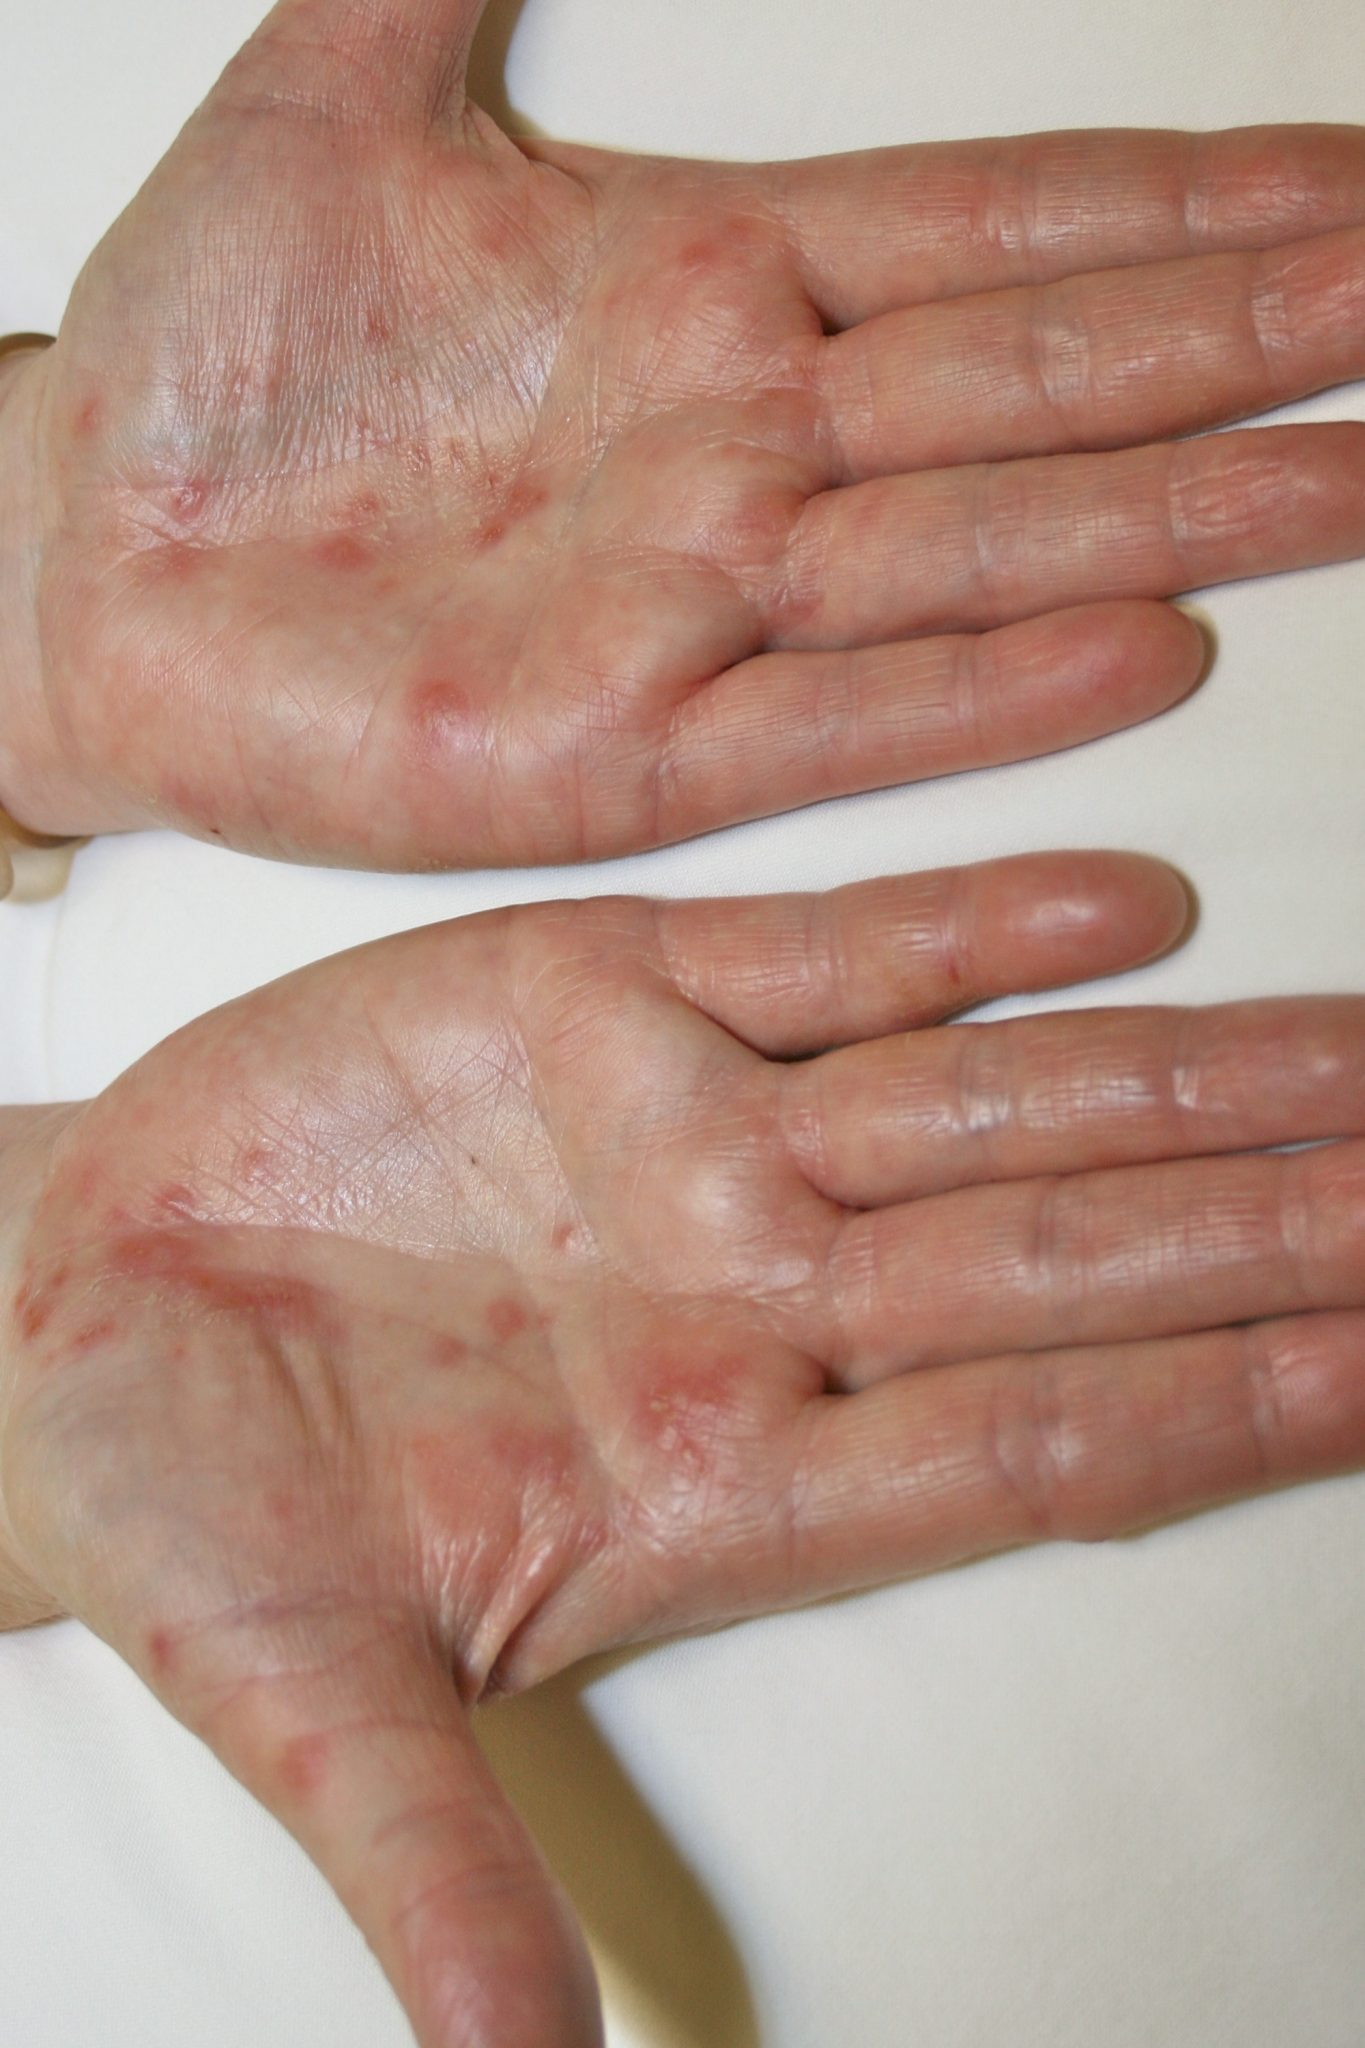 Types Of Eczema On Hands And Feet Dorothee Padraig South